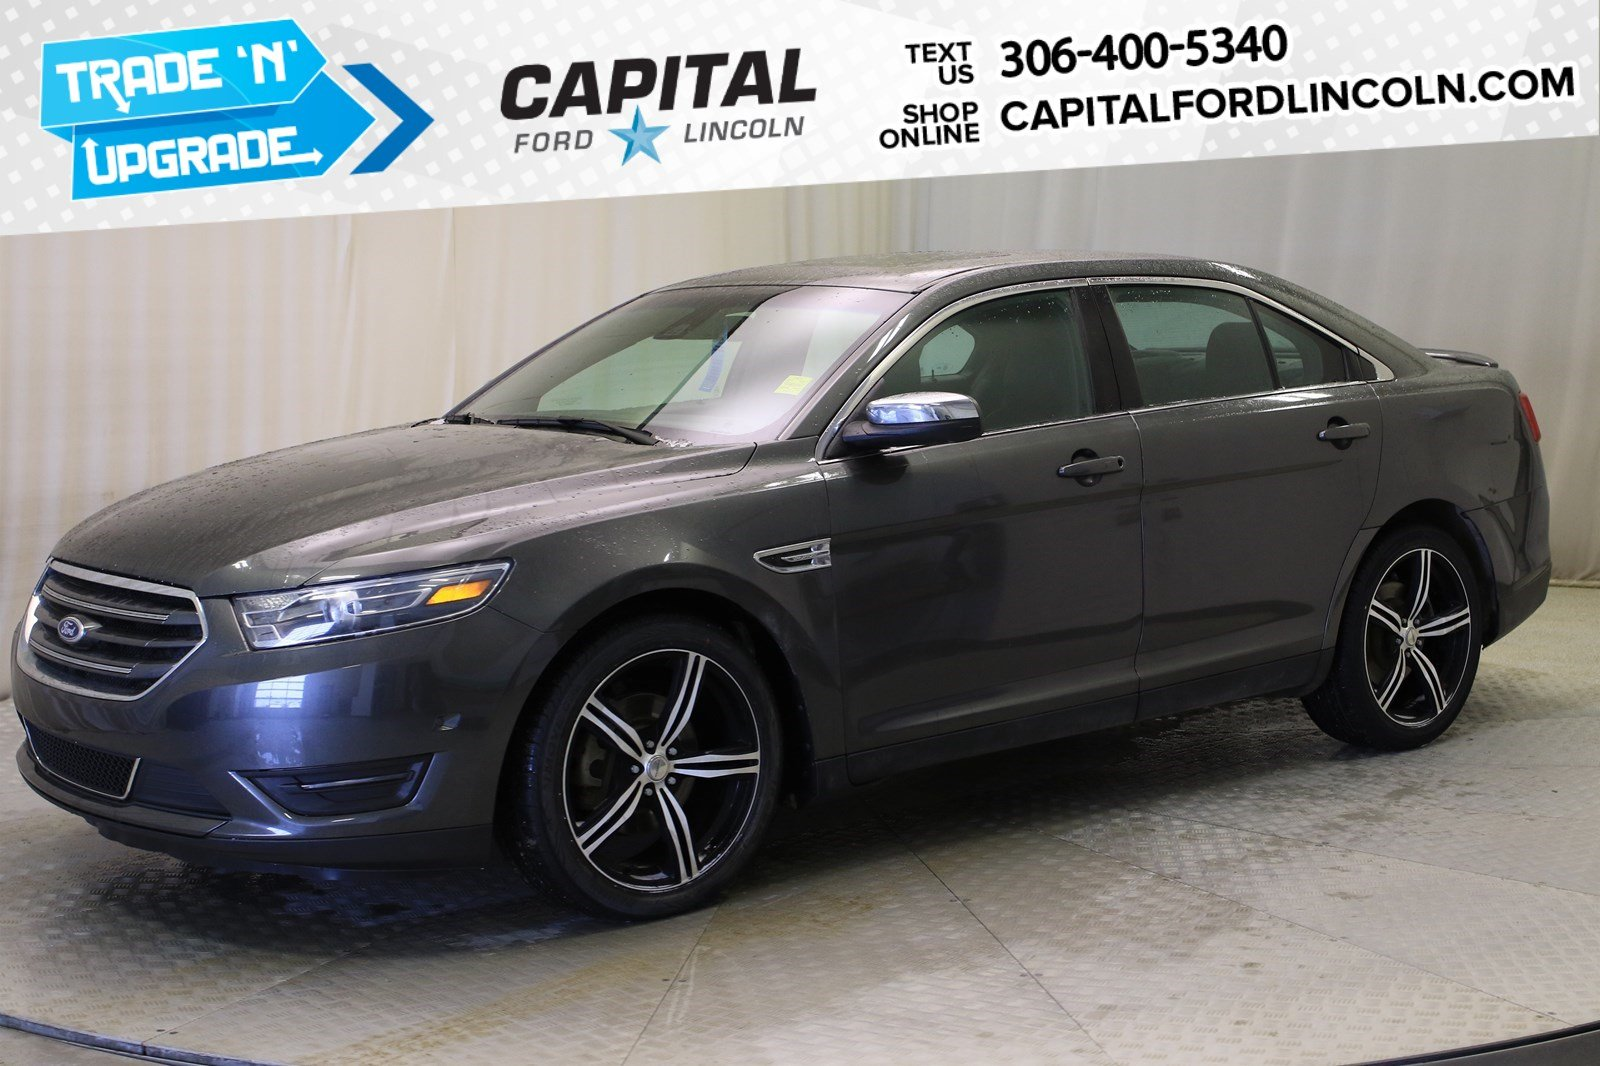 Pre-Owned 2016 Ford Taurus Limited AWD